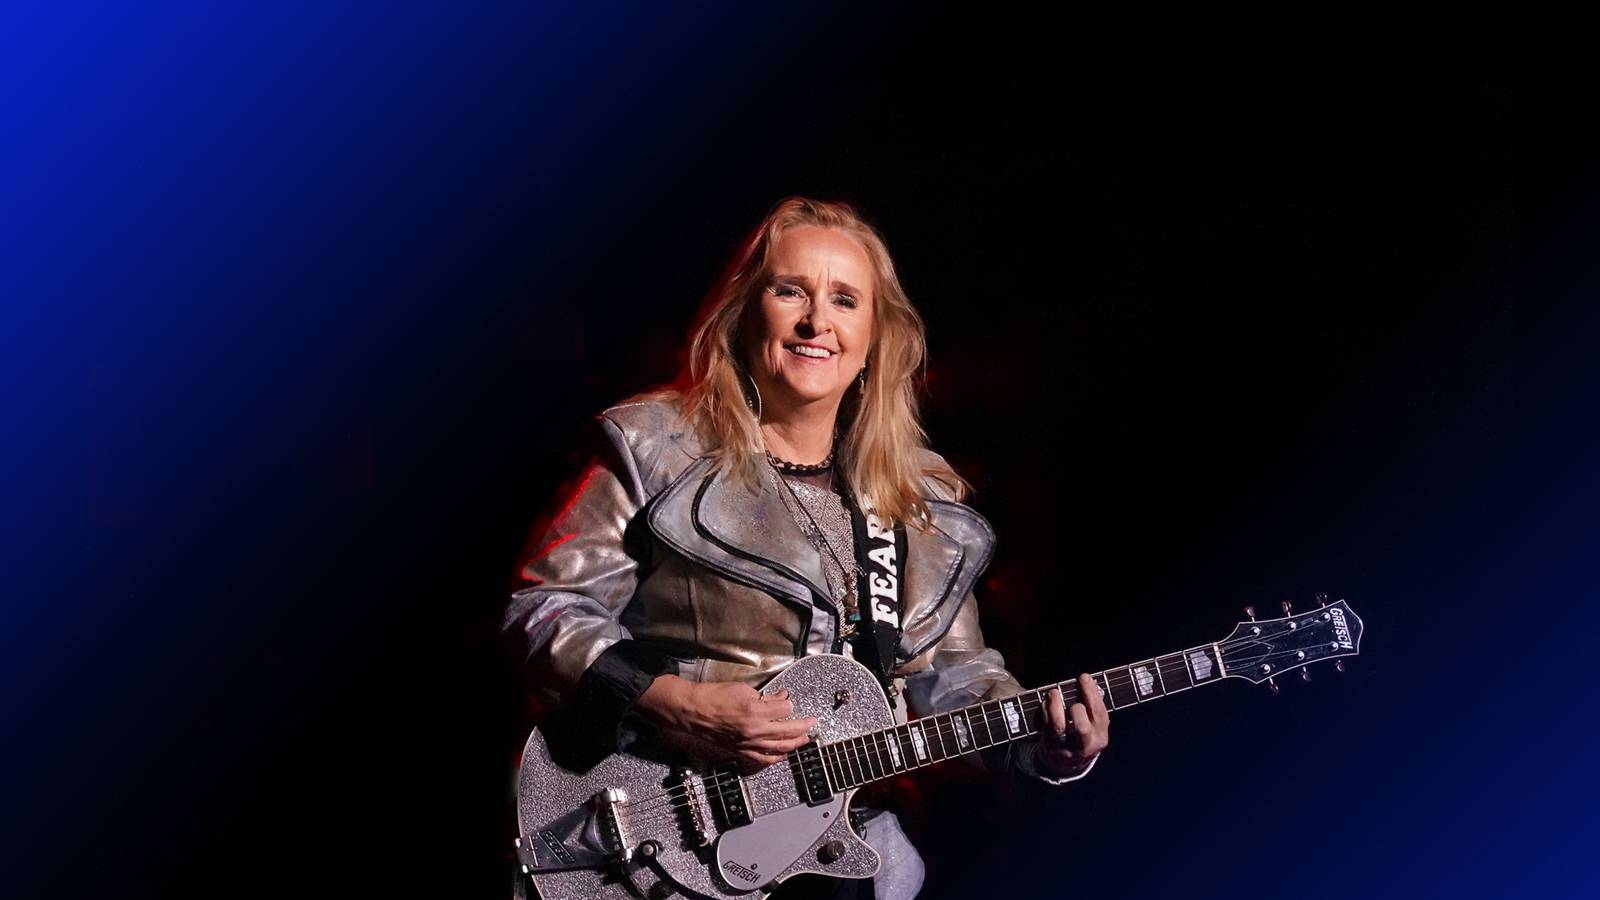 Melissa Etheridge (Rescheduled from 4/14)